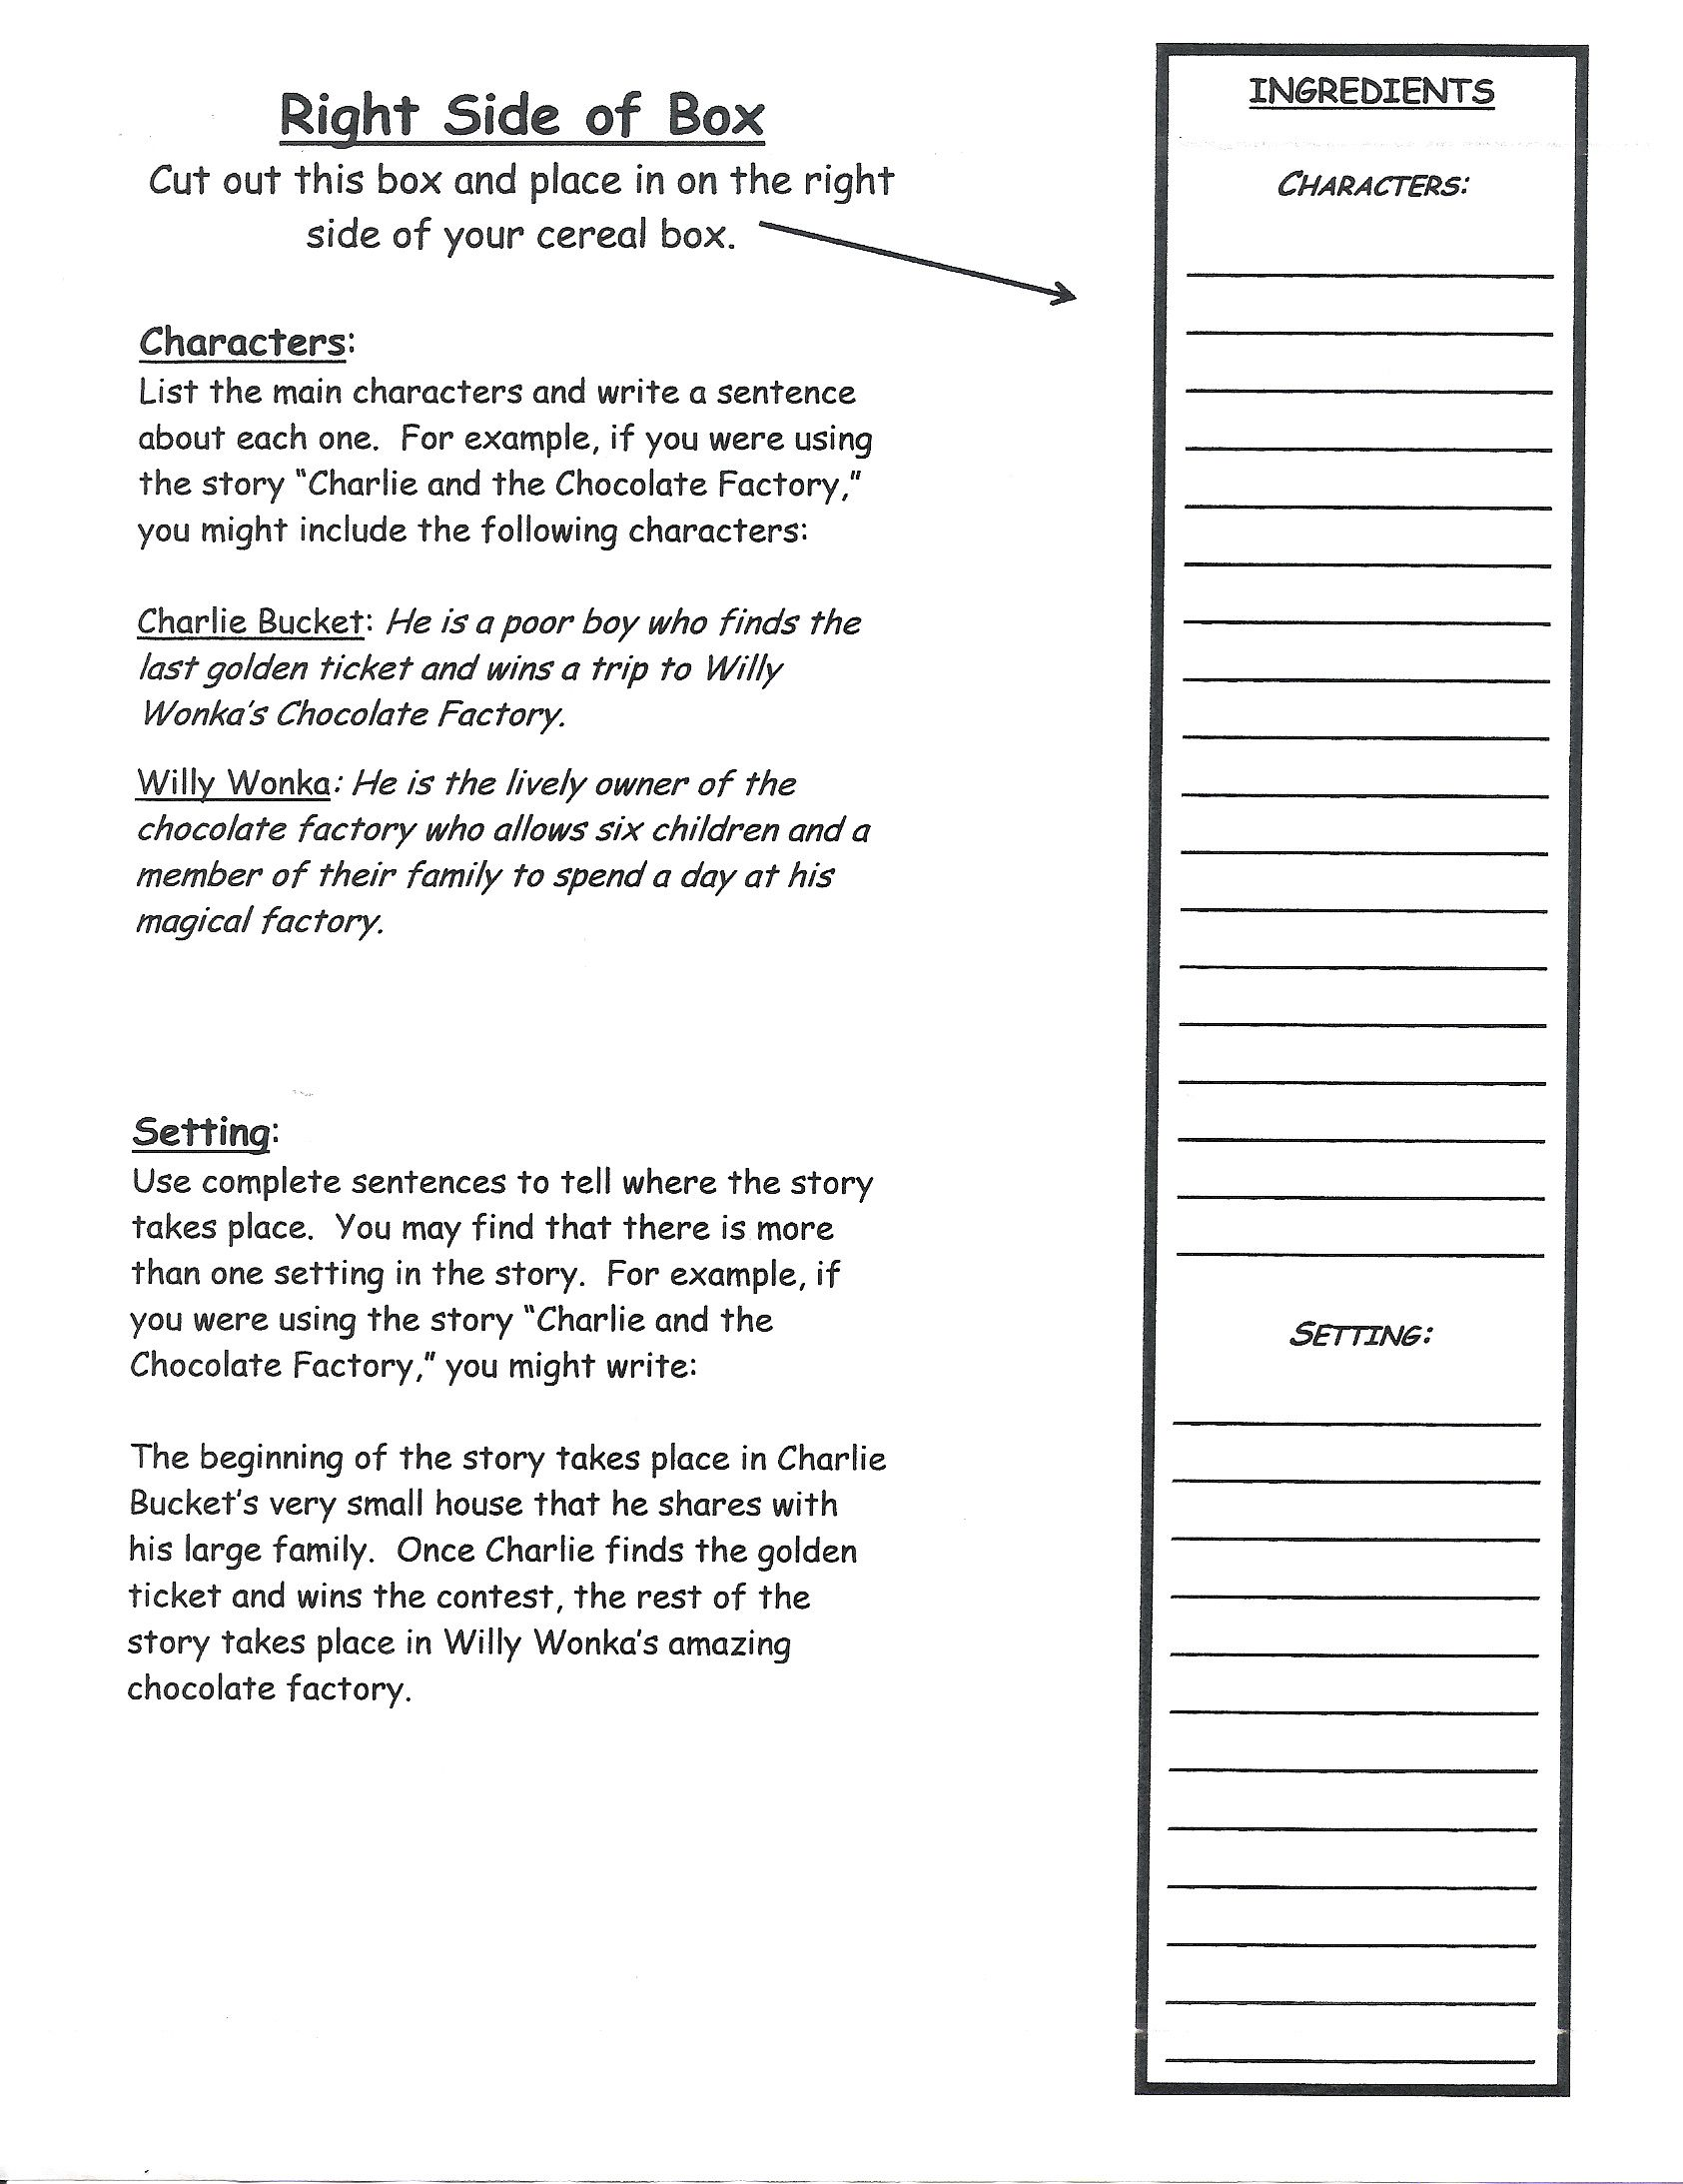 cereal box book report ideas pinterest